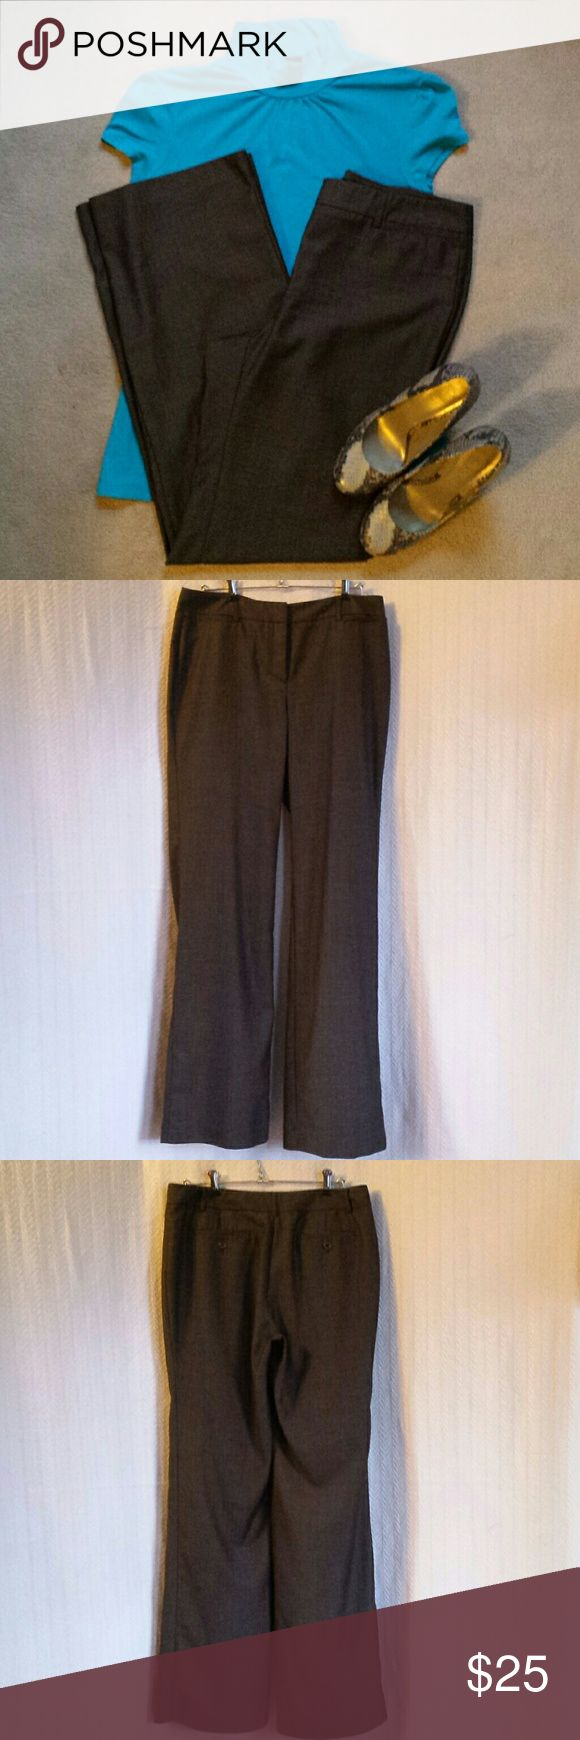 New York & Company Brown Slacks New York & Company Brown Slacks. Zipper with 2 bar and loop close.  One hidden inside button.   TALL slacks.  34 inch inseam.  92% polyester & 8% rayon  No rips, stains, or imperfections. Smoke free house. Reasonable offers are accepted and I discount bundles. New York & Company Pants